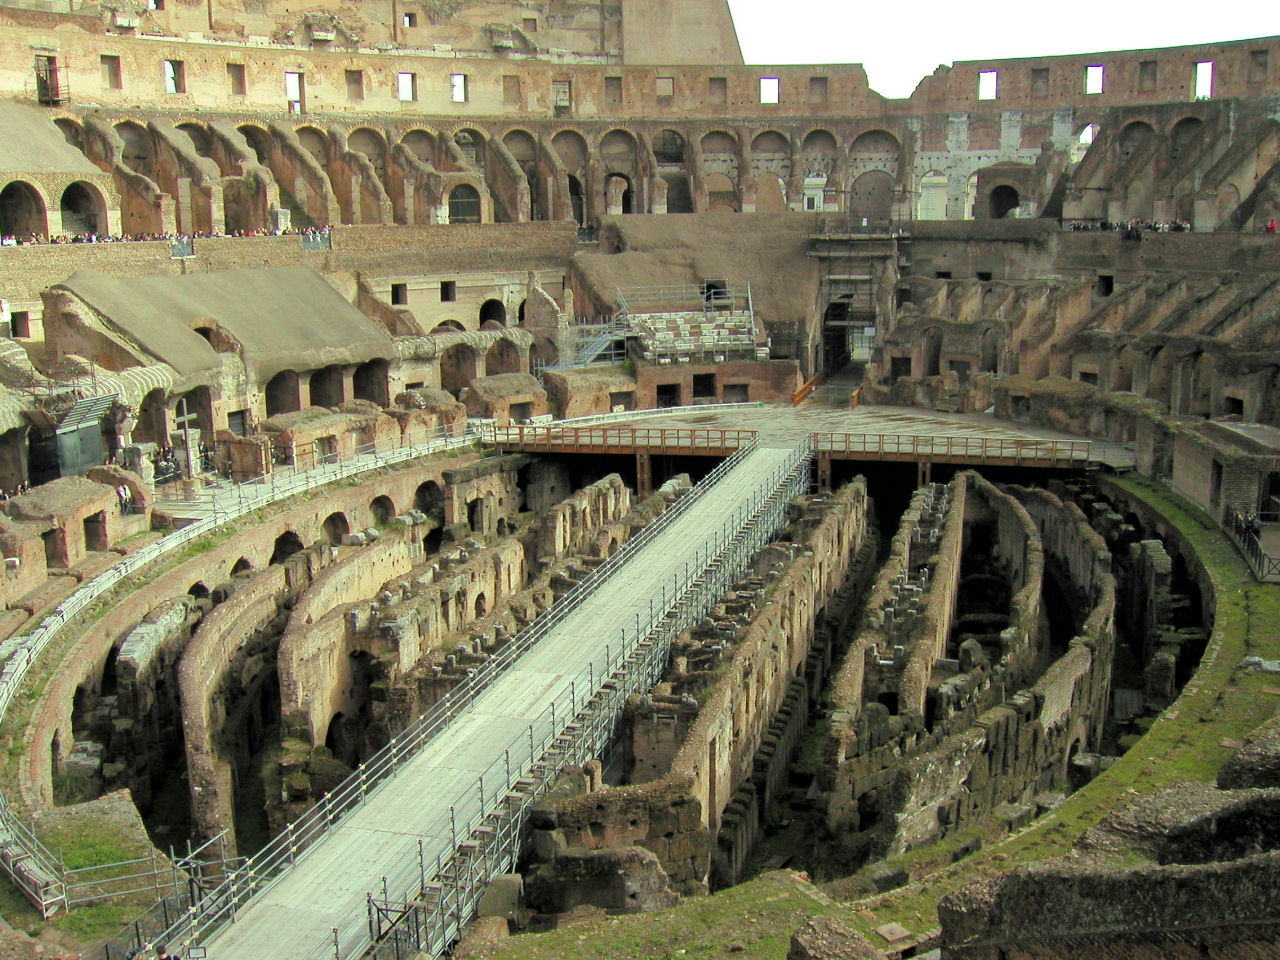 the roman colosseum The amphitheater in pozzuoli is one of the largest roman amphitheaters in italy capable of hosting over 20,000 spectators its construction begun under the reign of emperor vespasian who also initiated the construction of the colosseum in rome.